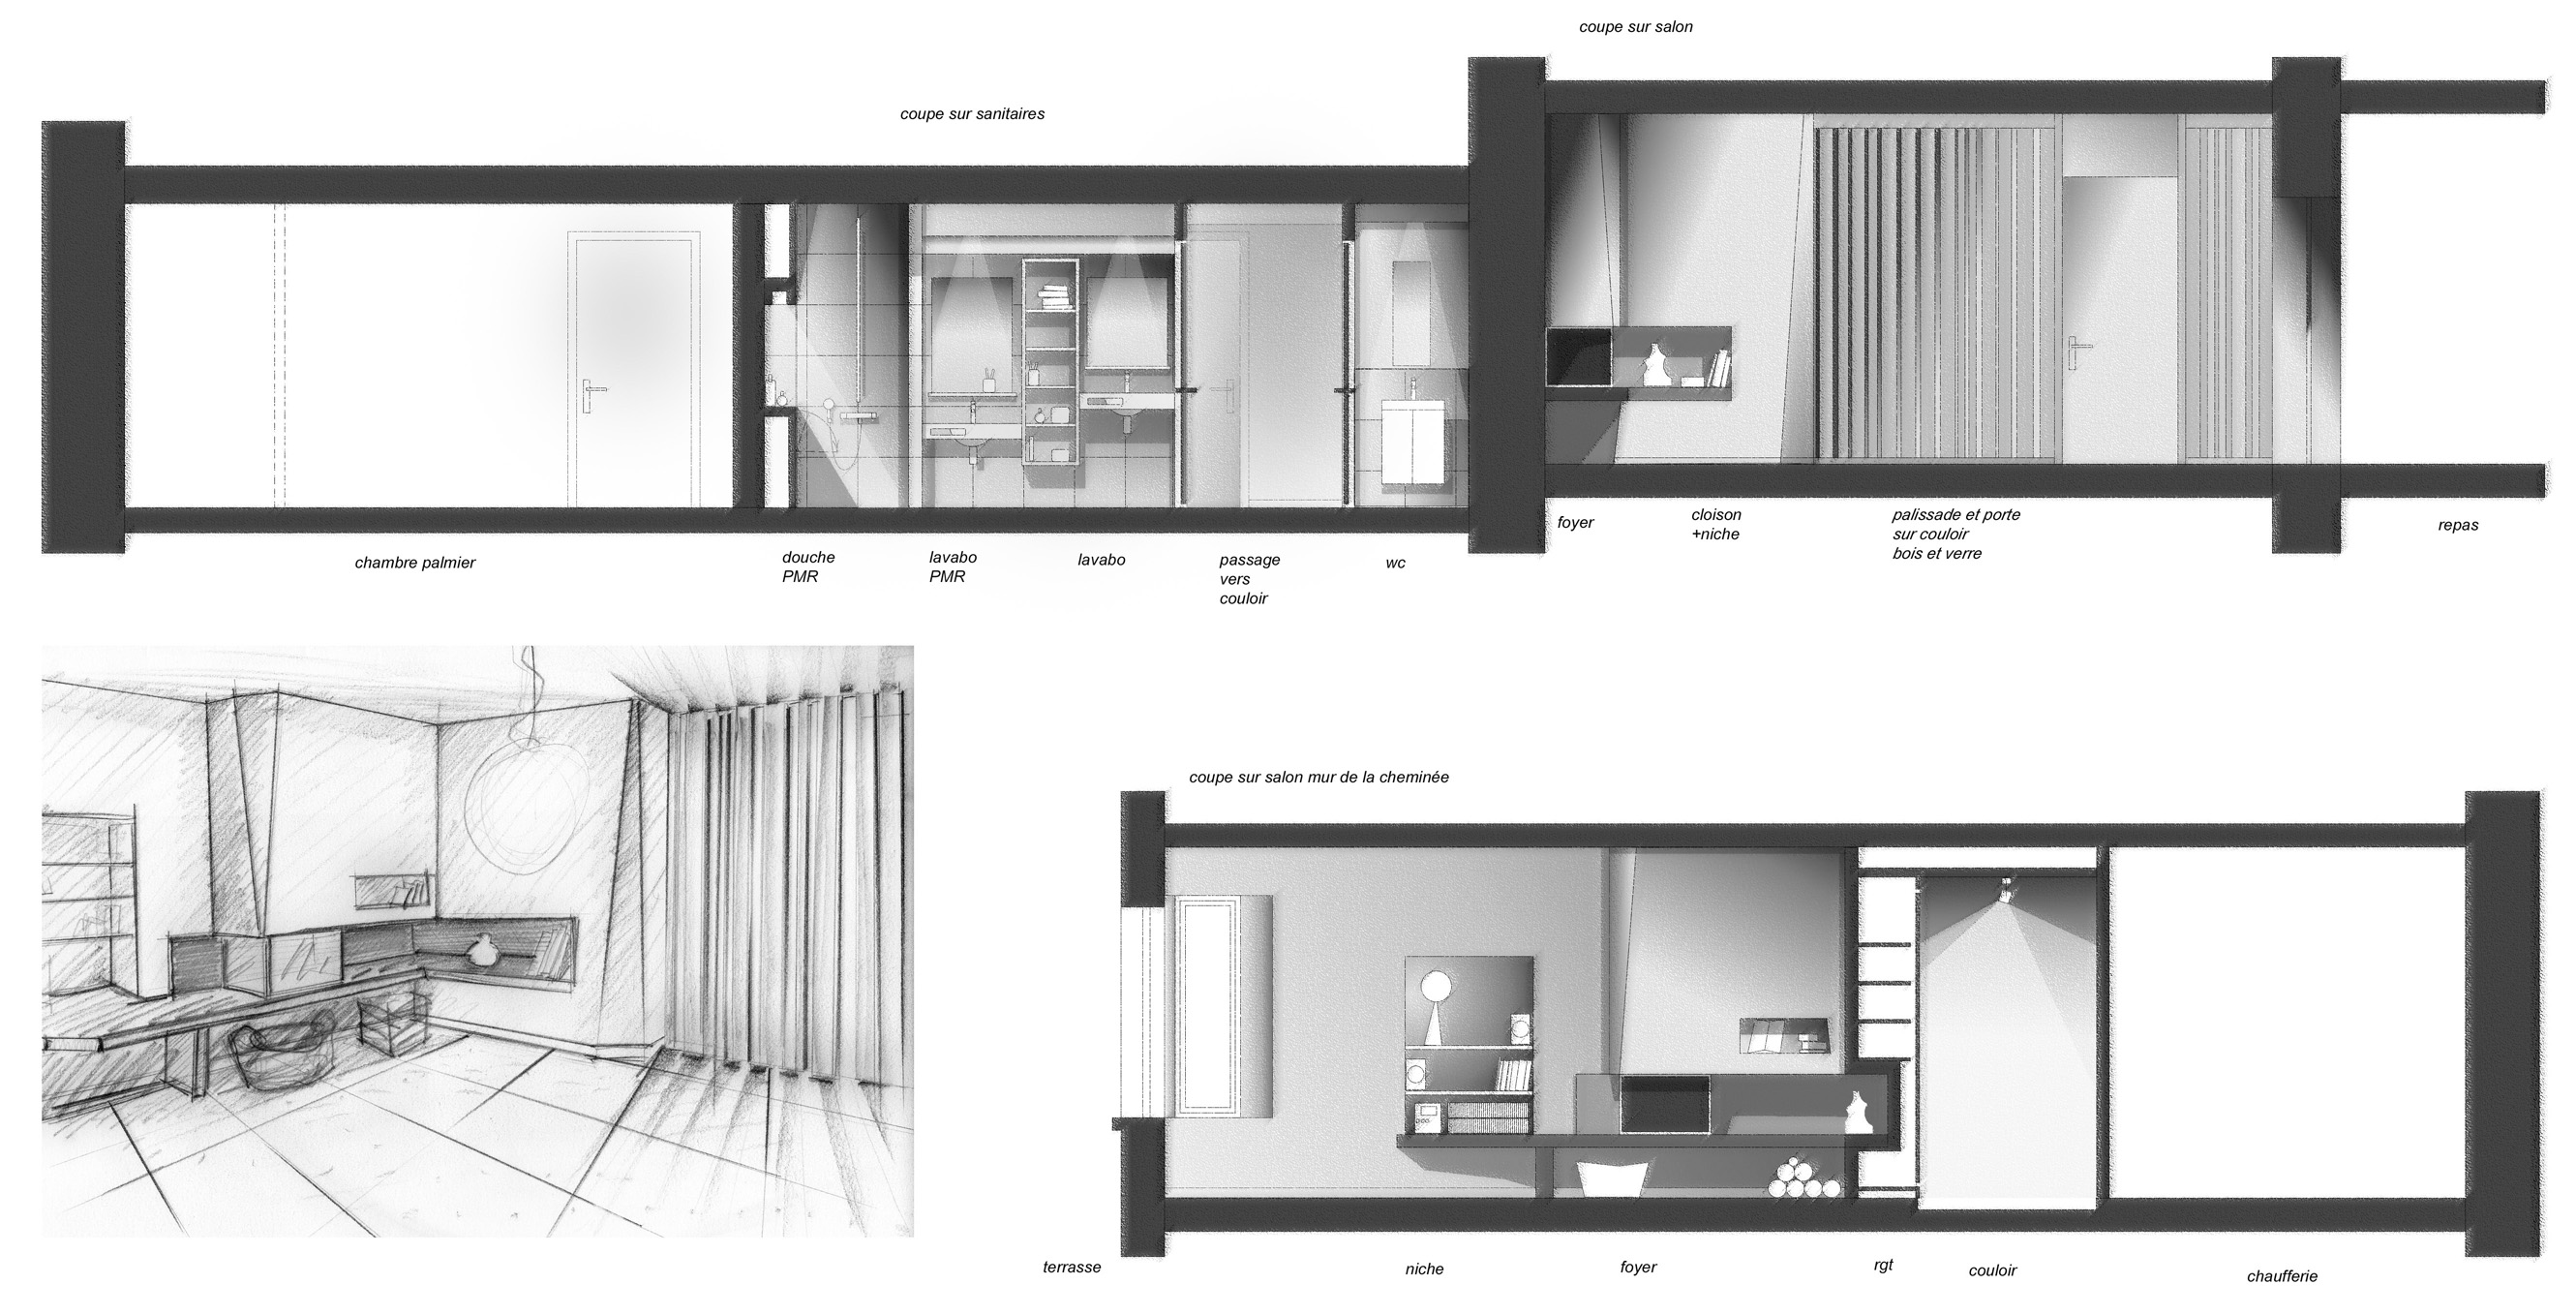 croquis gallery categories yann jourdan. Black Bedroom Furniture Sets. Home Design Ideas